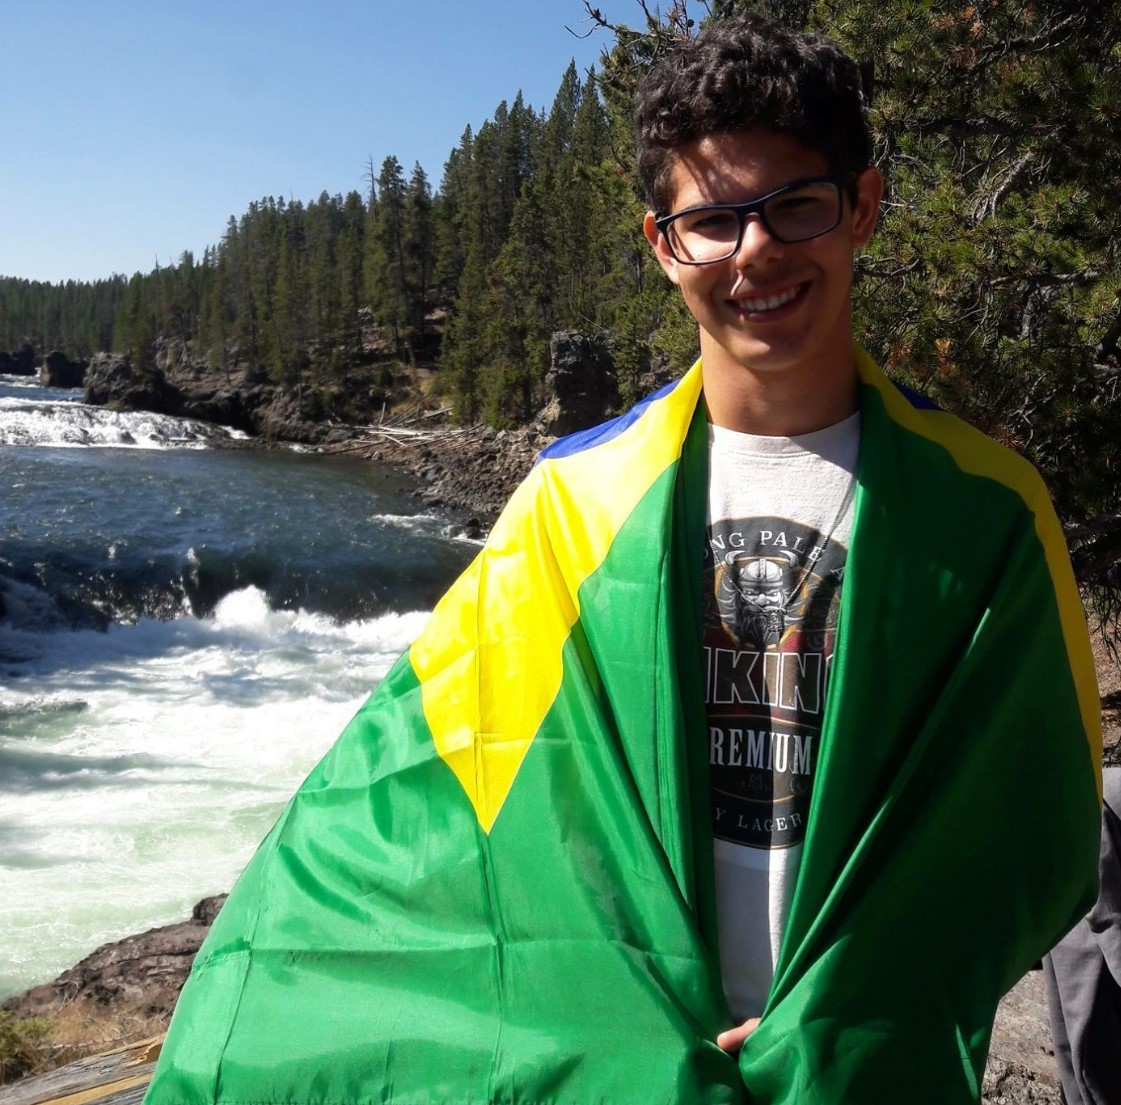 Pedro Teixeira poses for a picture with the Brazilian flag wrapped around him in Yellowstone National Park.